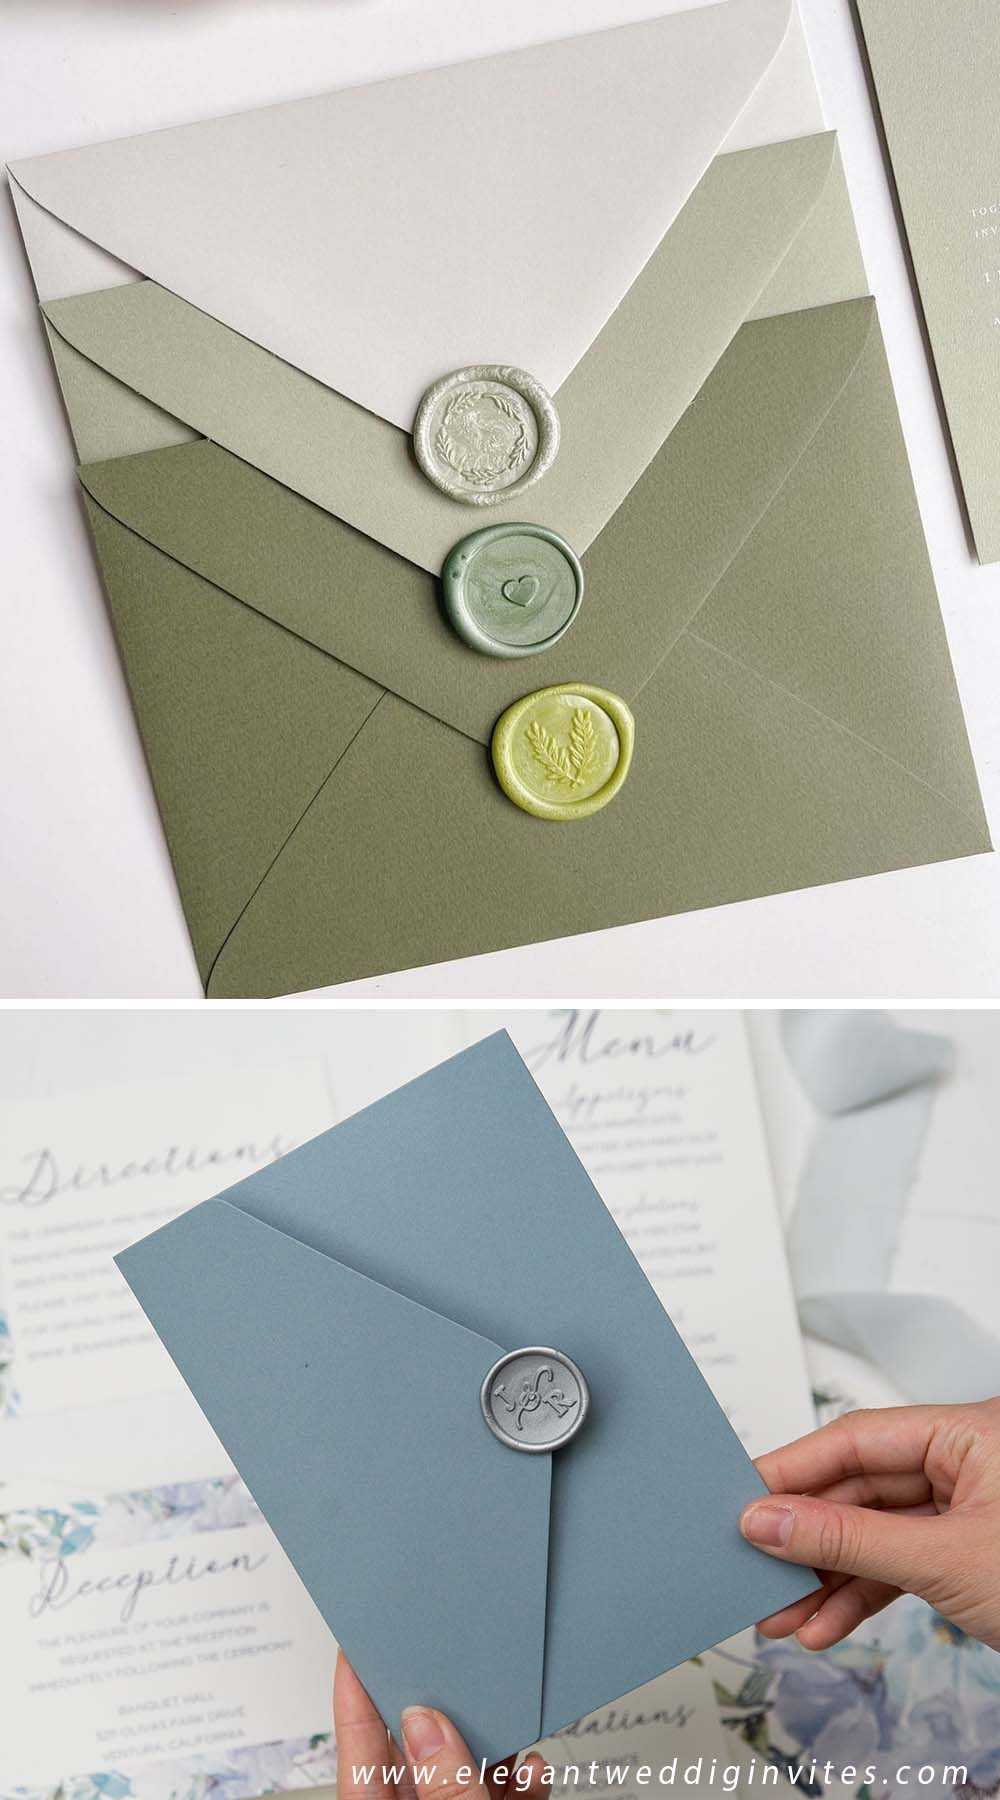 popular wax seal stamp on outer envelopes for wedding invitations